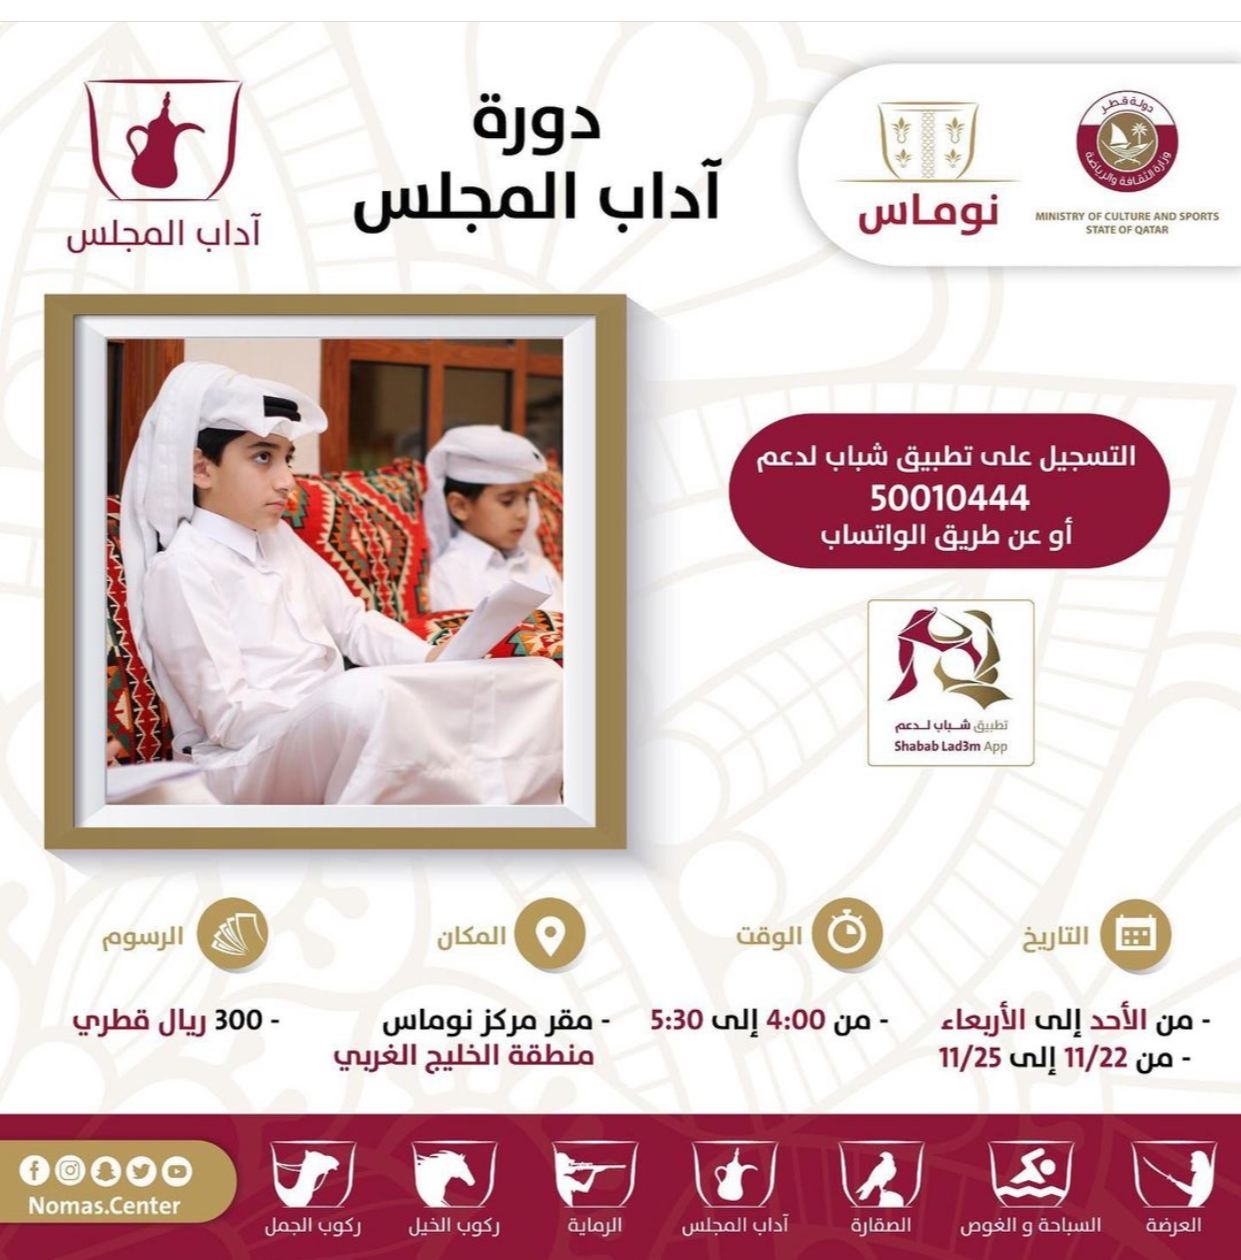 Doha Where & When .. Recreational and educational activities (Nov 19 - 25)